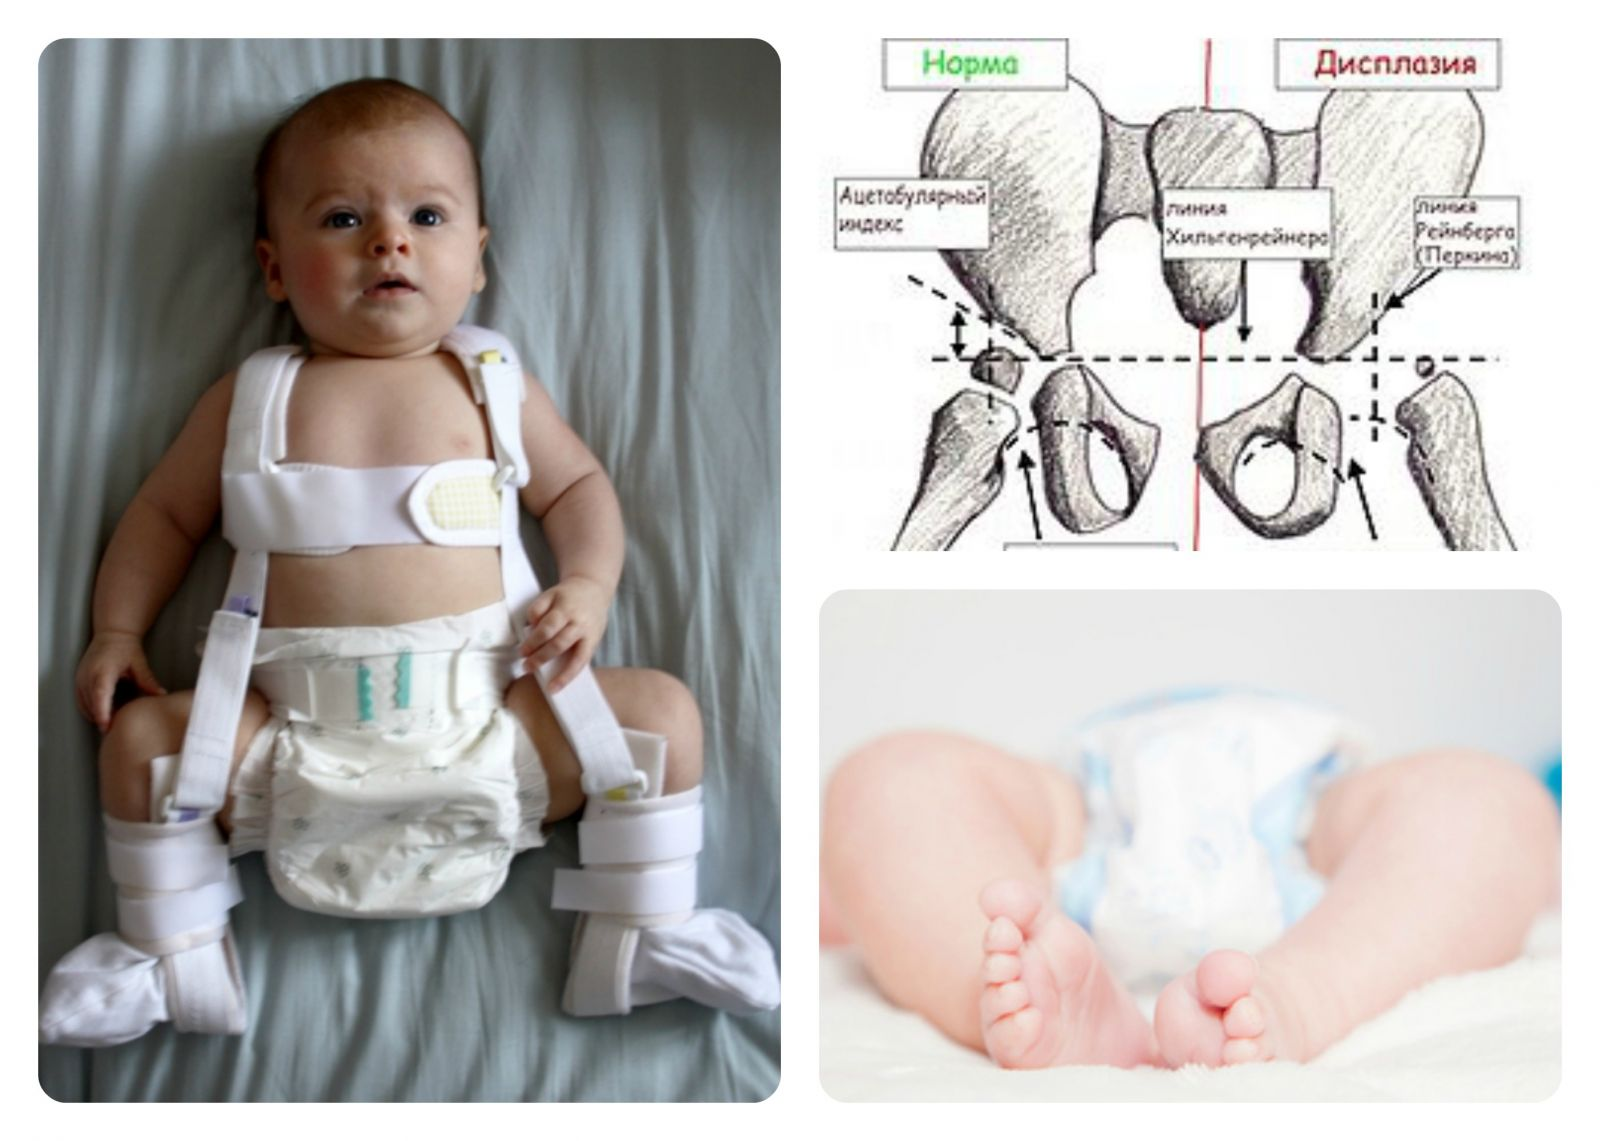 Dysplasia of the hip joints: how to act to parents of infants - image number 1